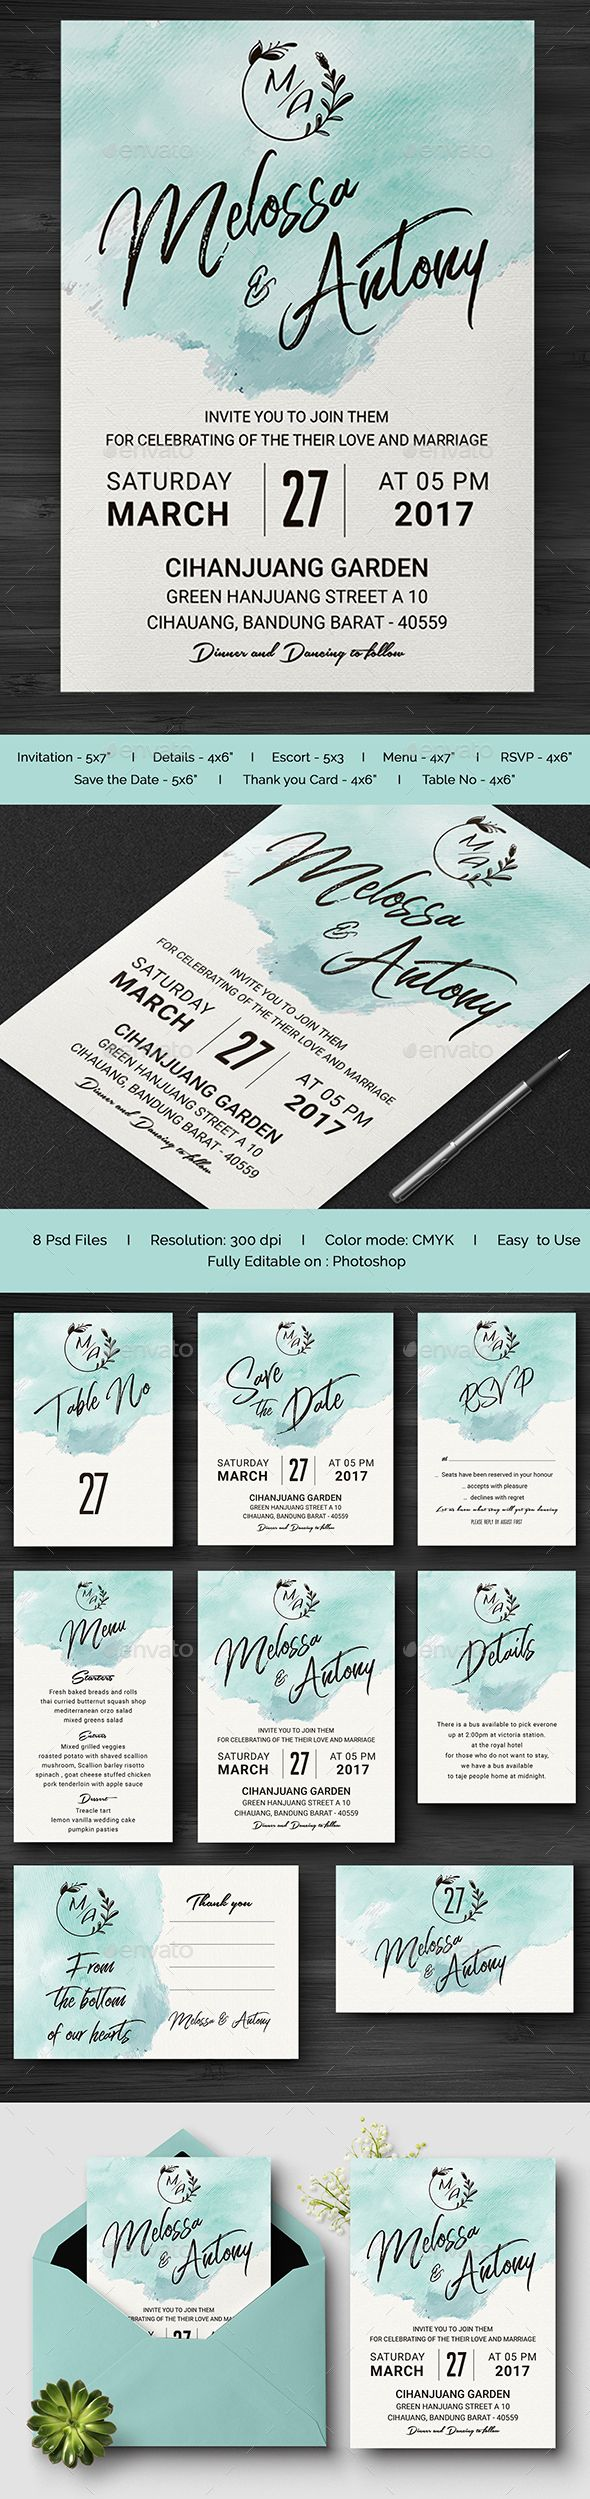 cruise wedding save the date announcement%0A Best     Wedding invitation templates ideas on Pinterest   Diy wedding  stationery  Wedding invitation wording templates and Wedding invitation  wording